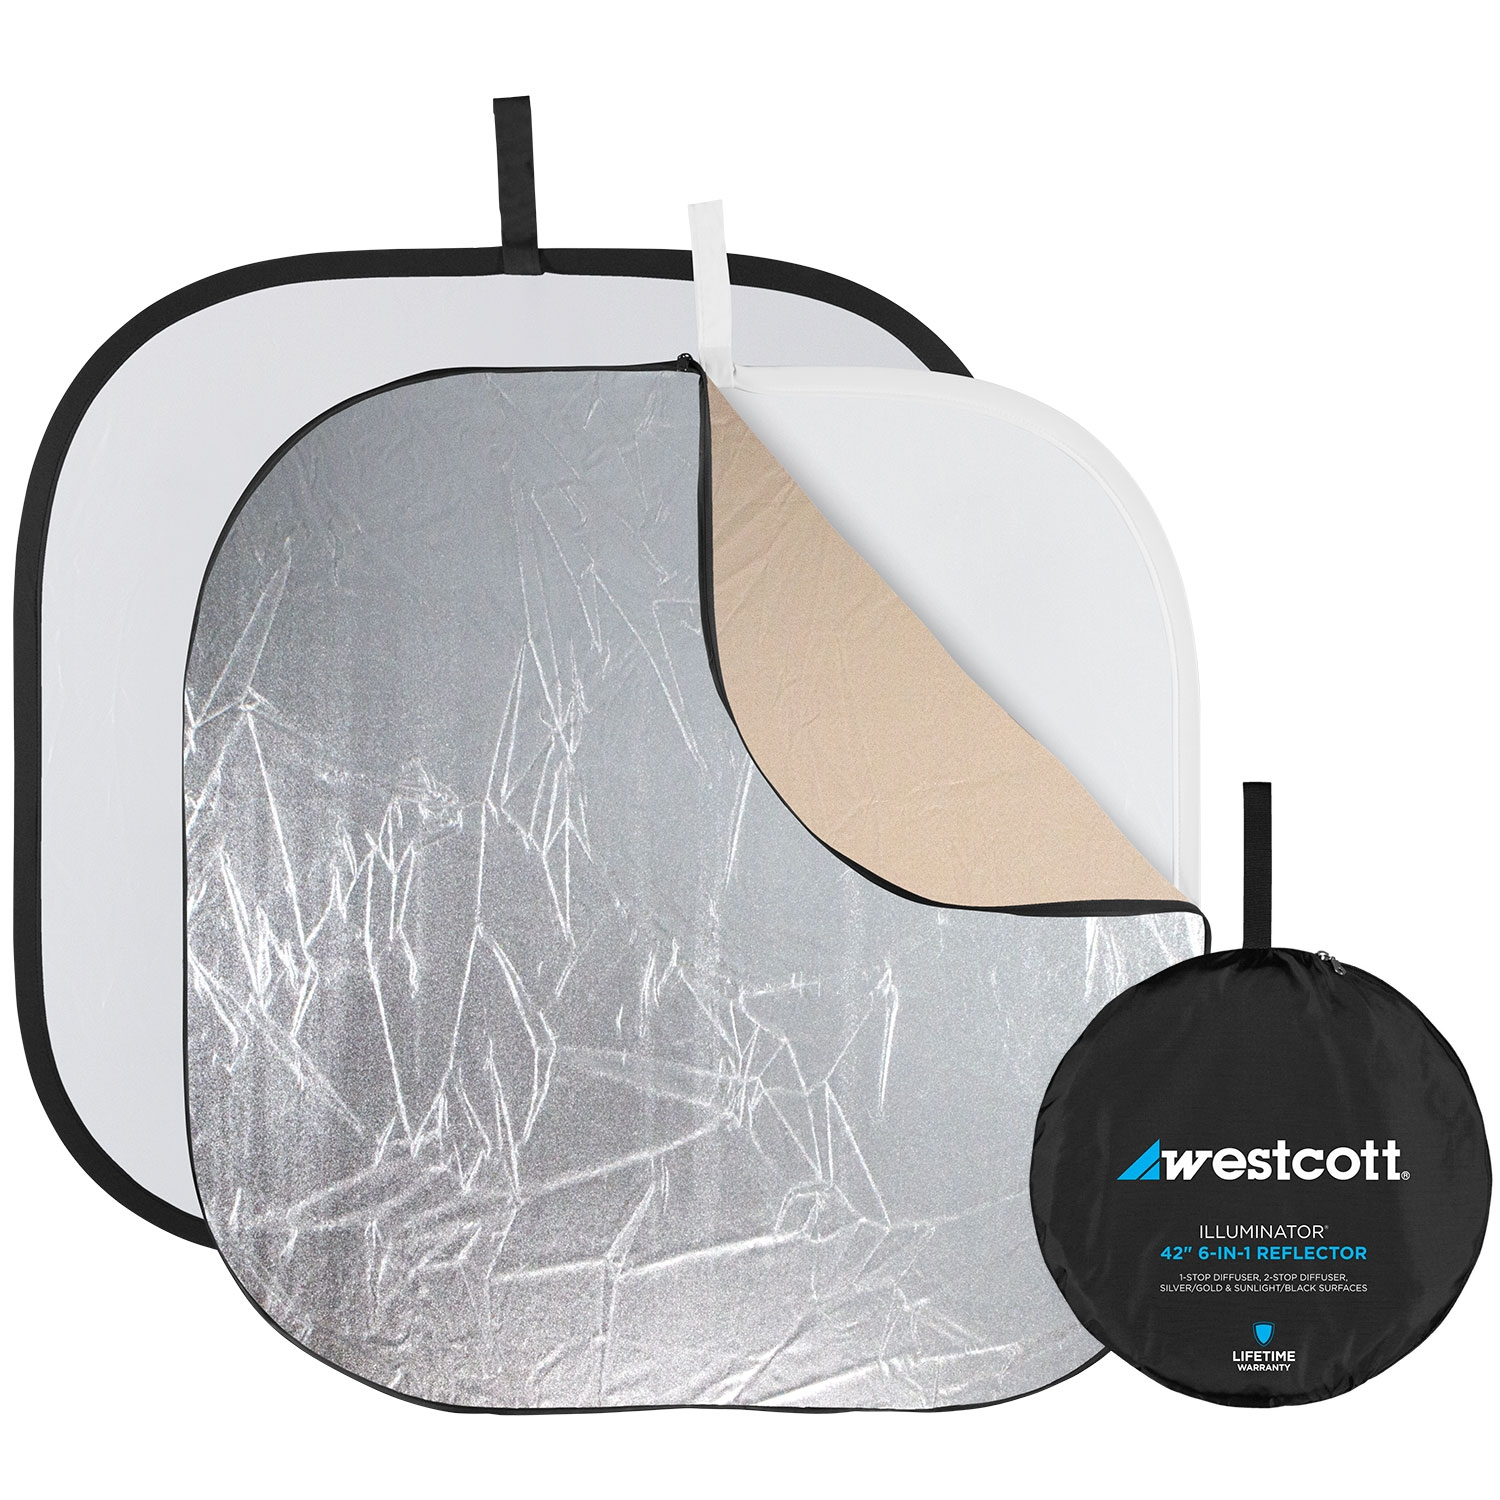 Illuminator Collapsible 6-in-1 Reflector (42-in.)